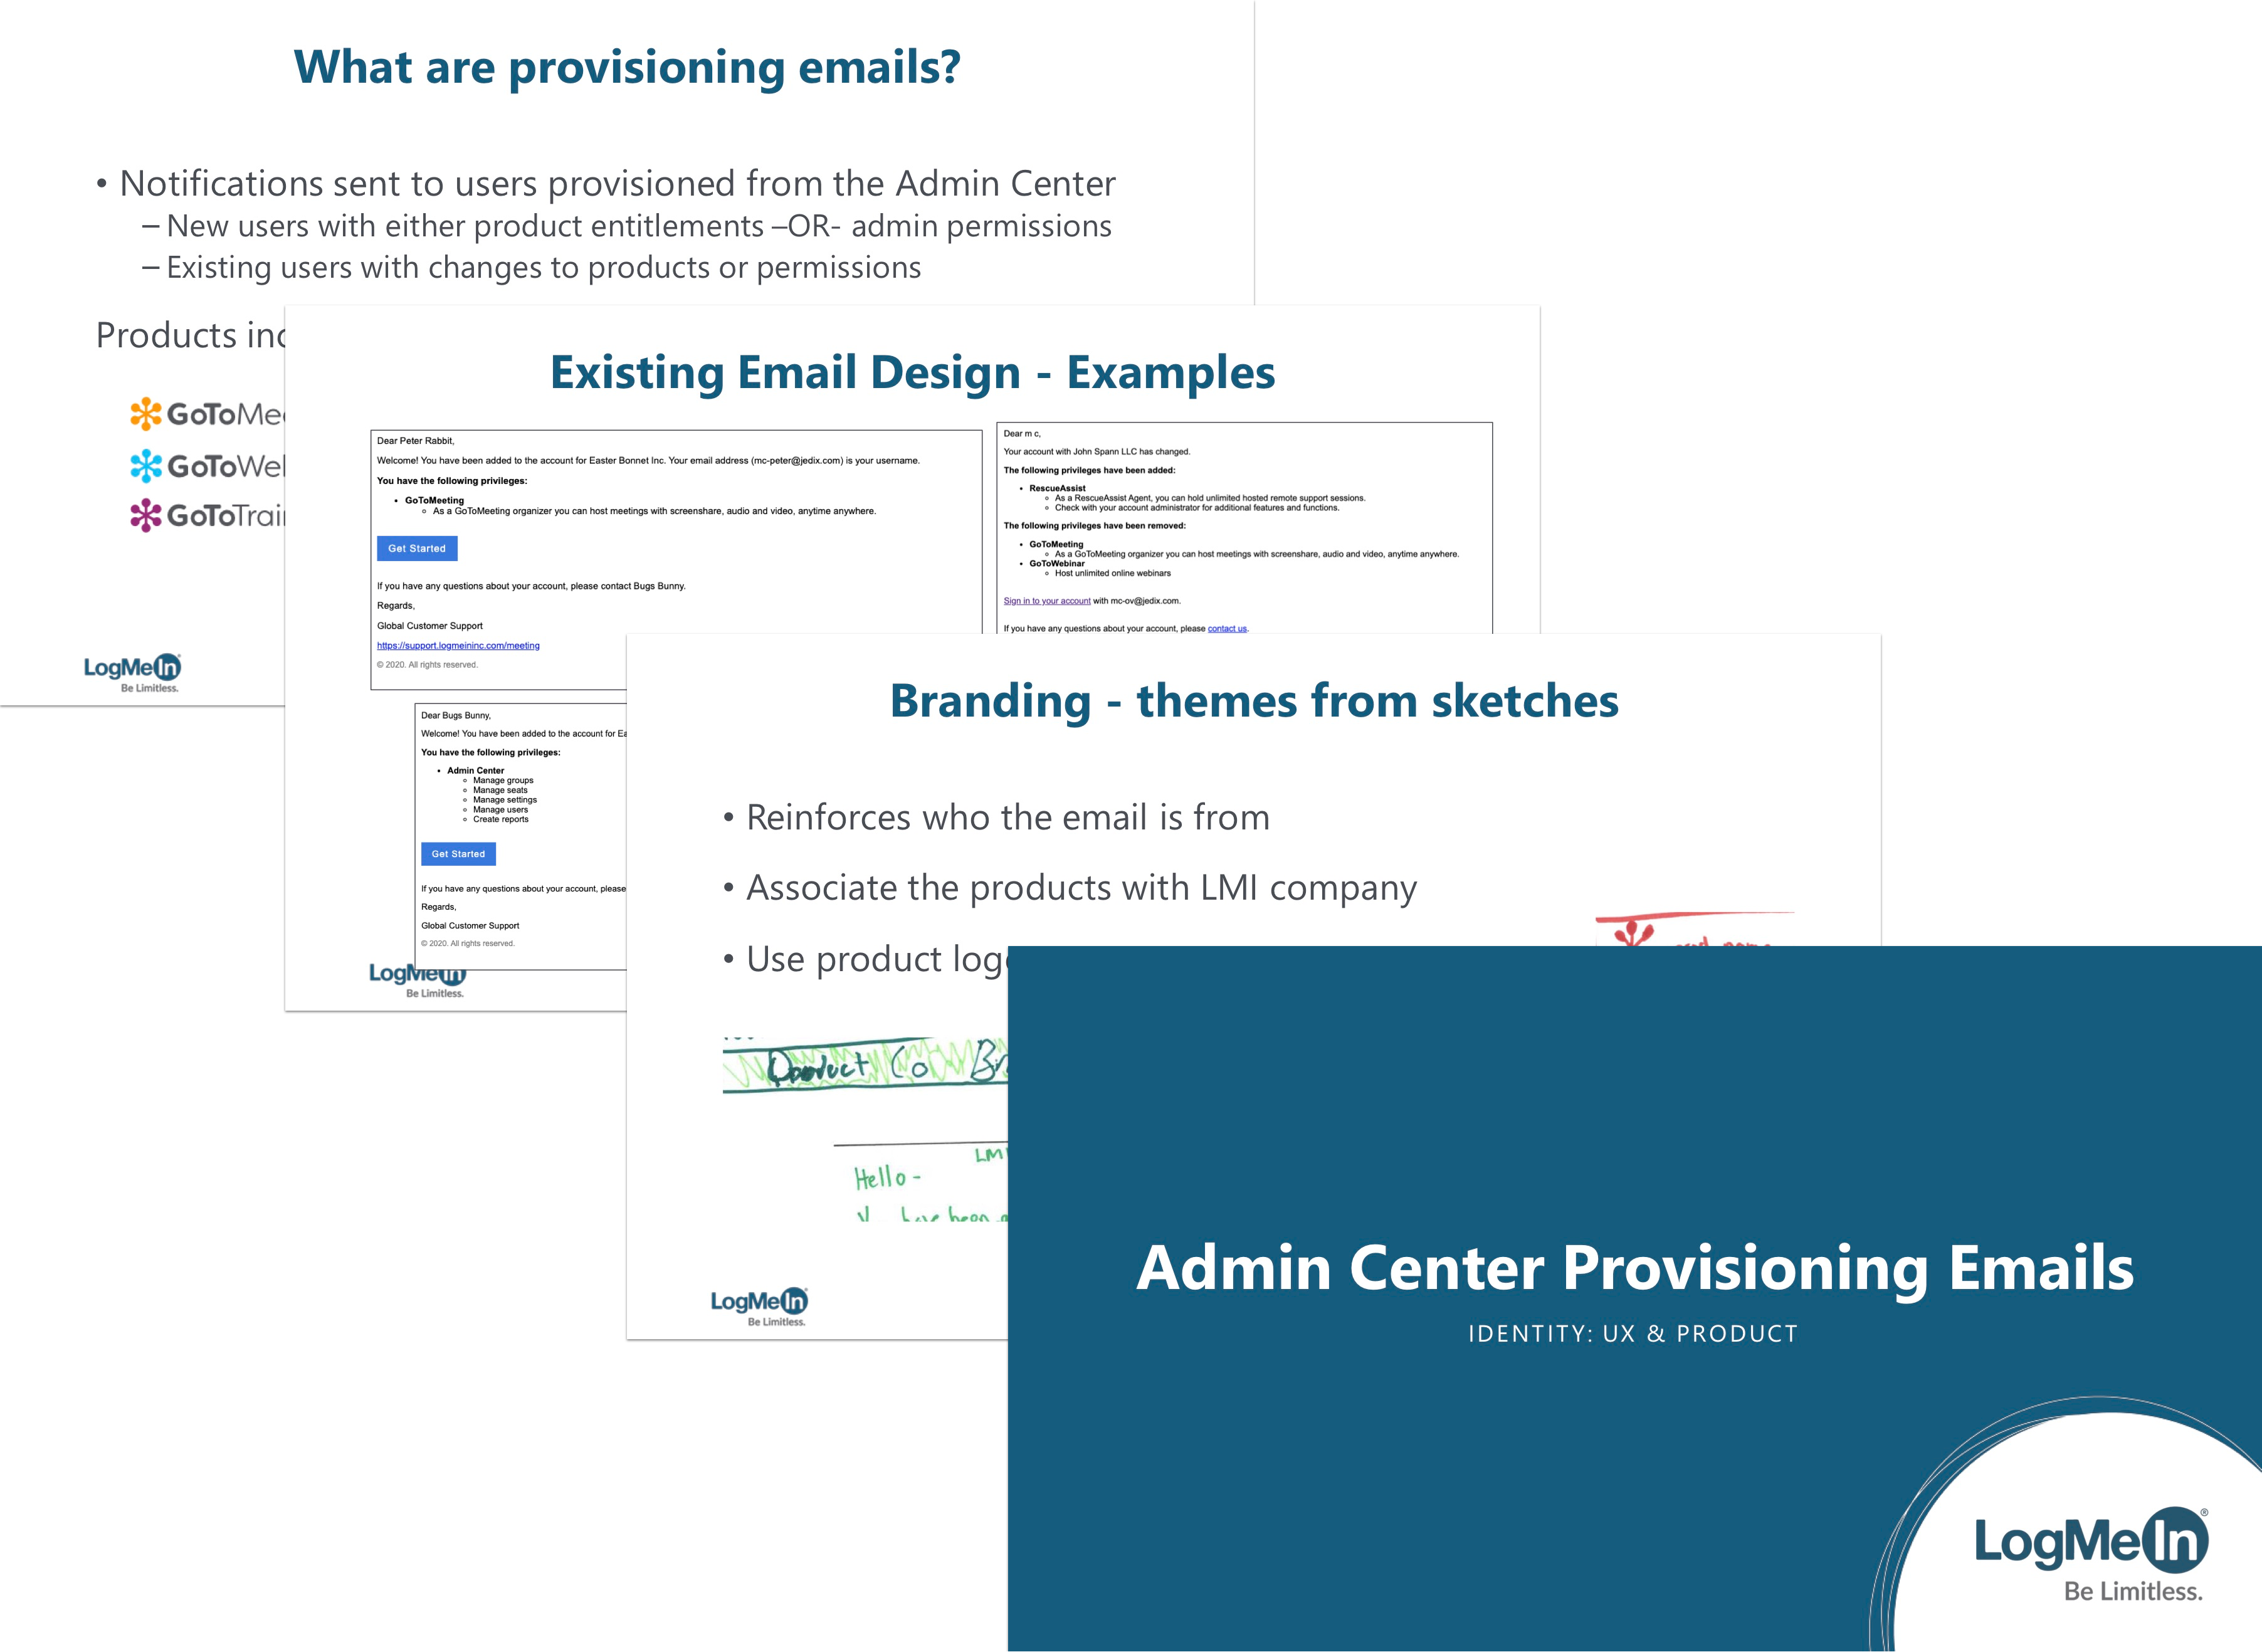 A sample of the presentation slides about the new emails.